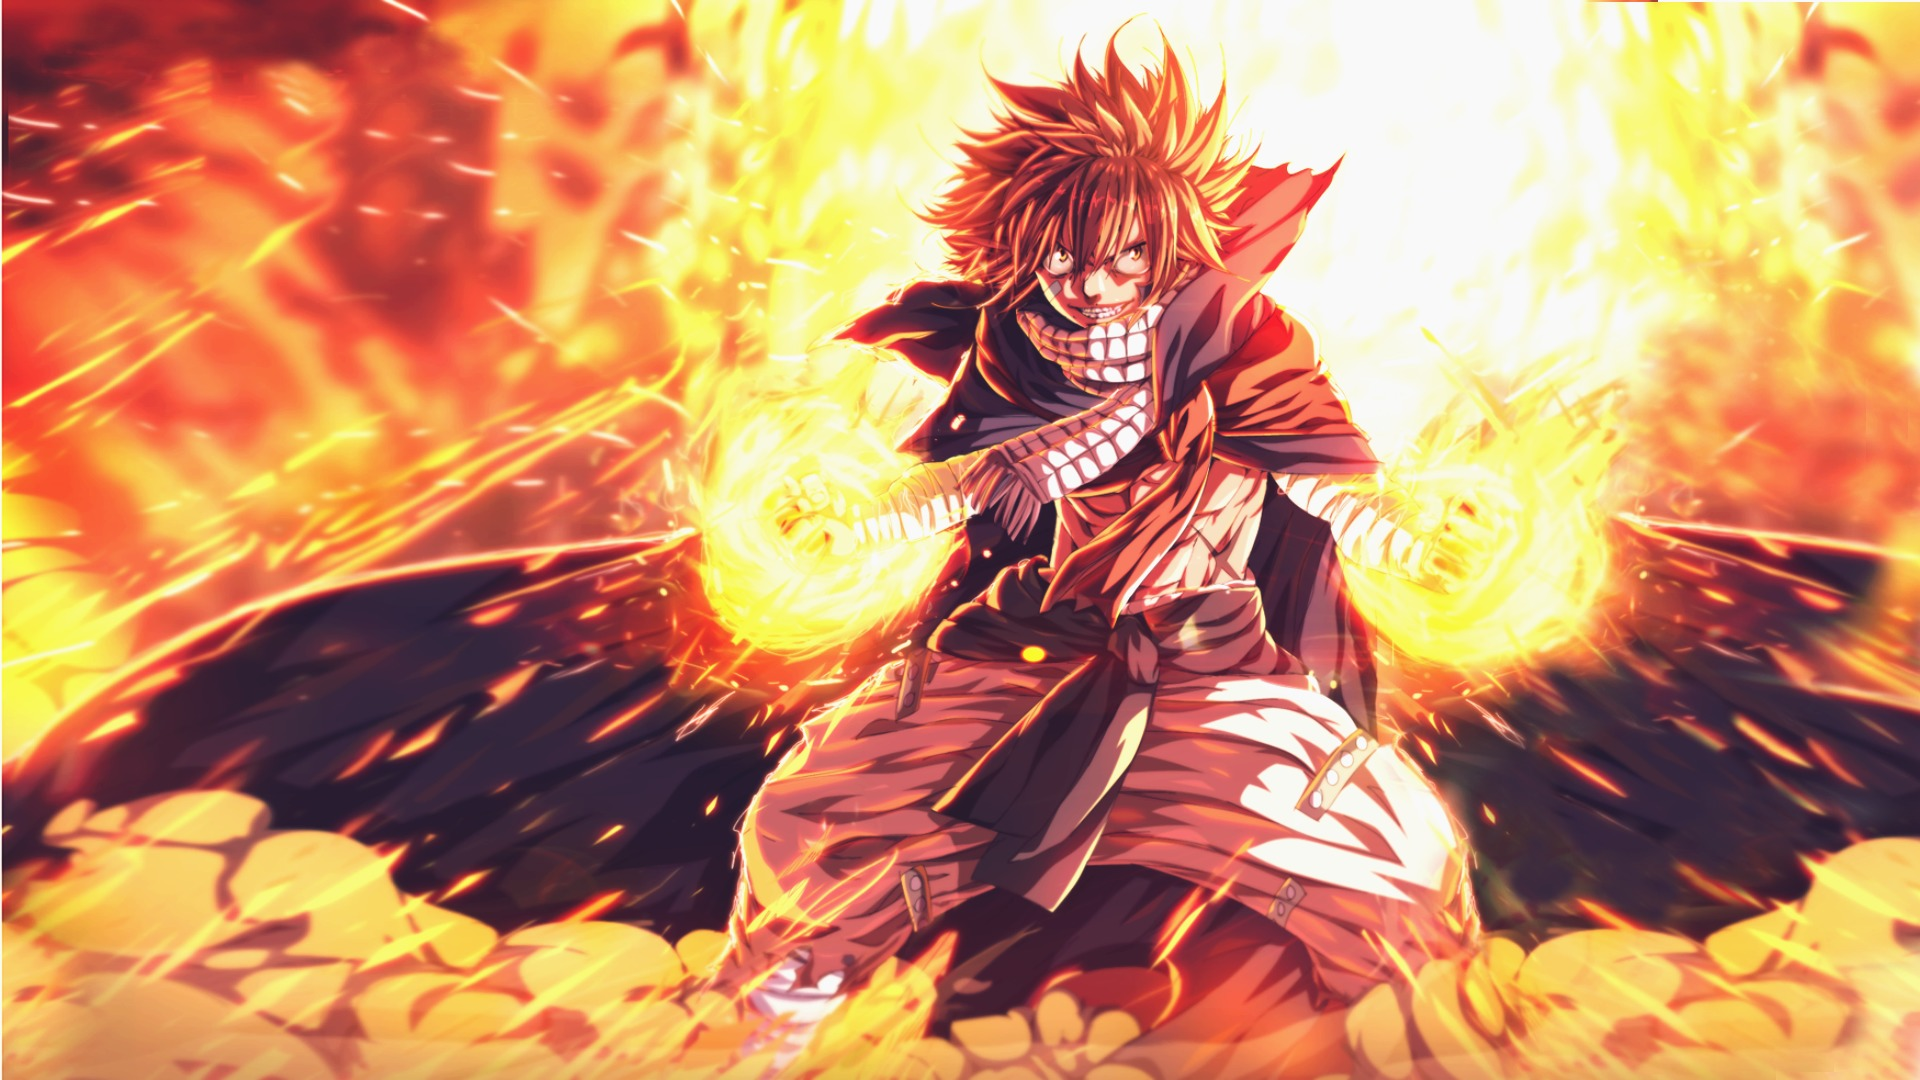 Anime wallpaper fairy tail erza wallpapers photo with high definition - Fairy Tail Natsu Dragneel Wallpaper Wallpapersafari